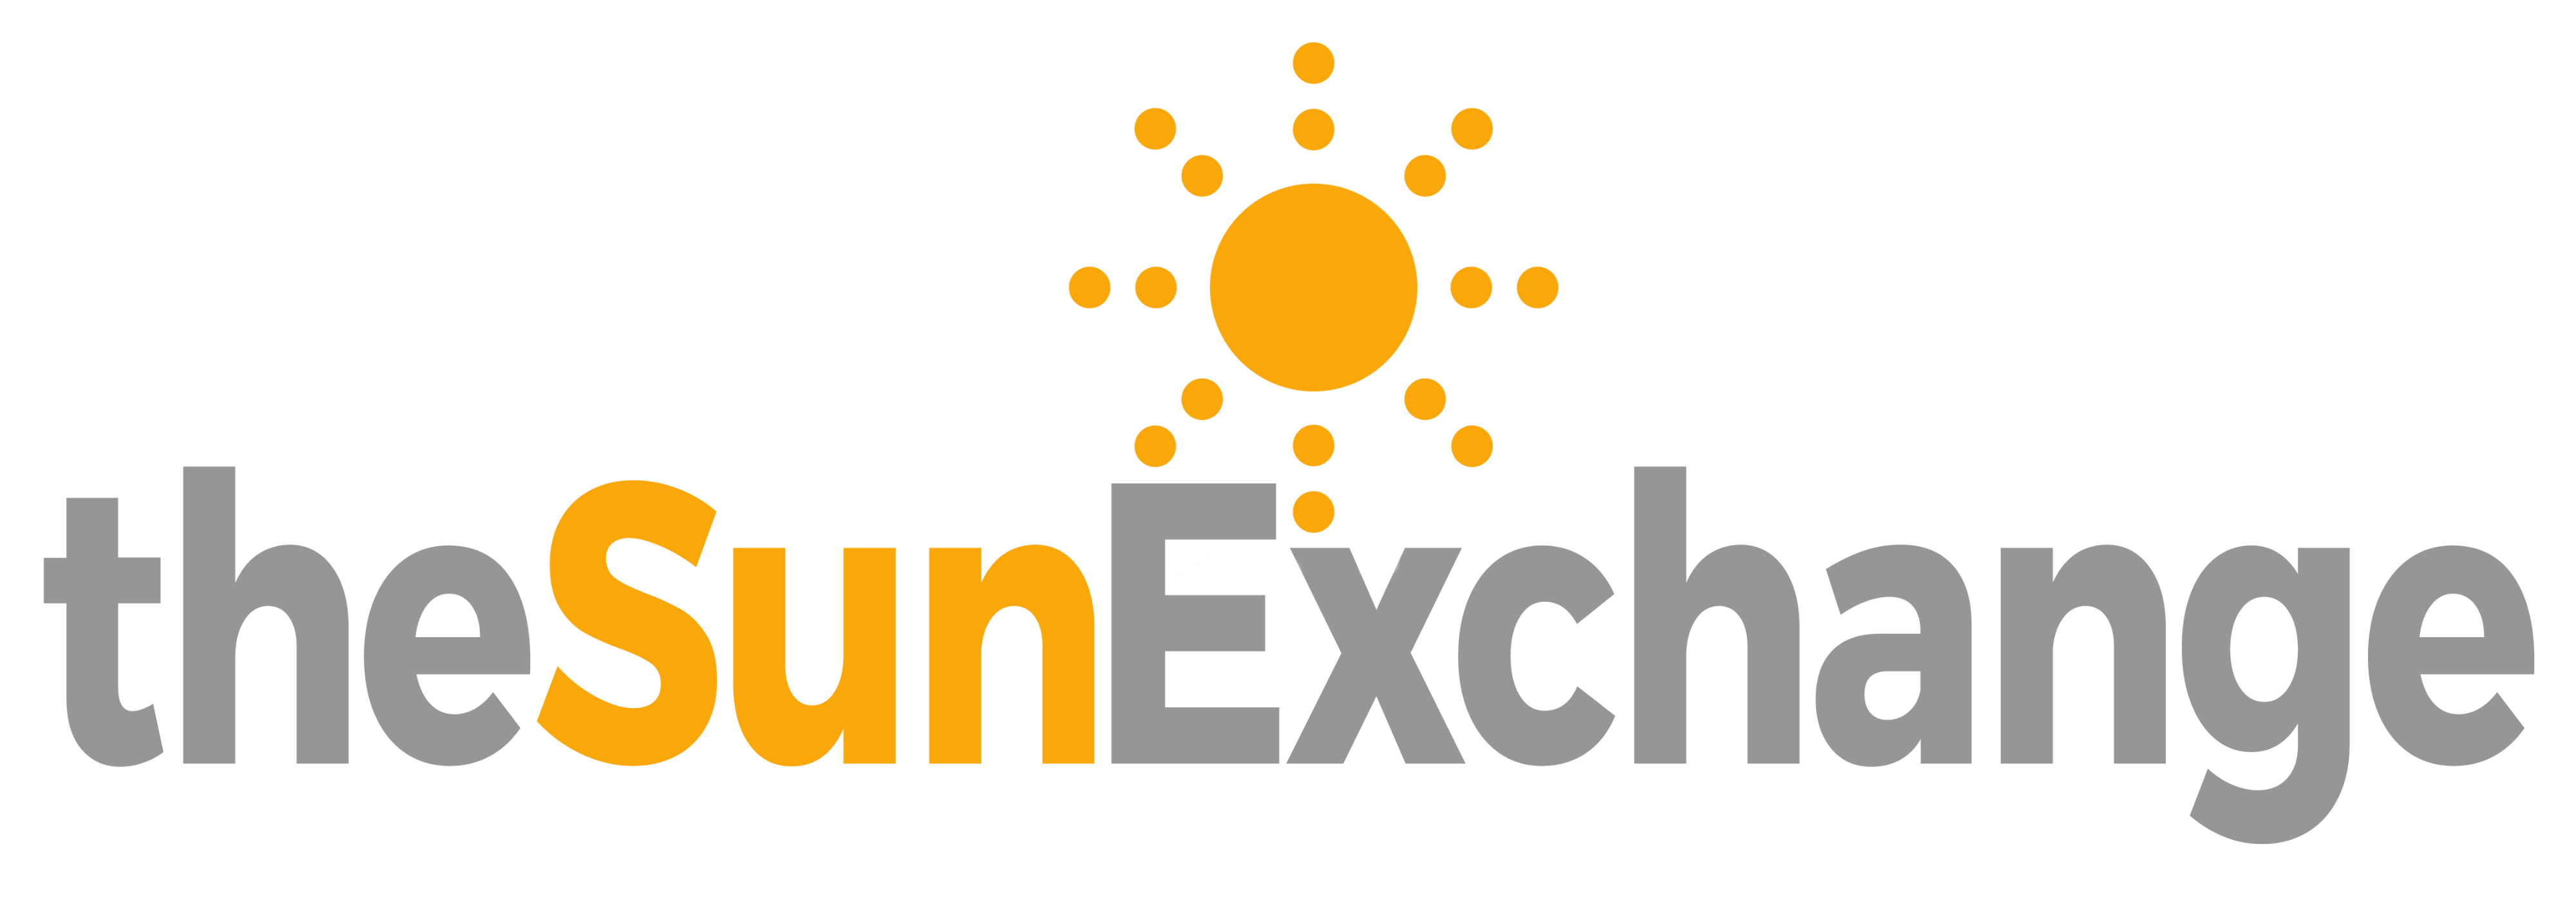 Sun exchange logo corrected